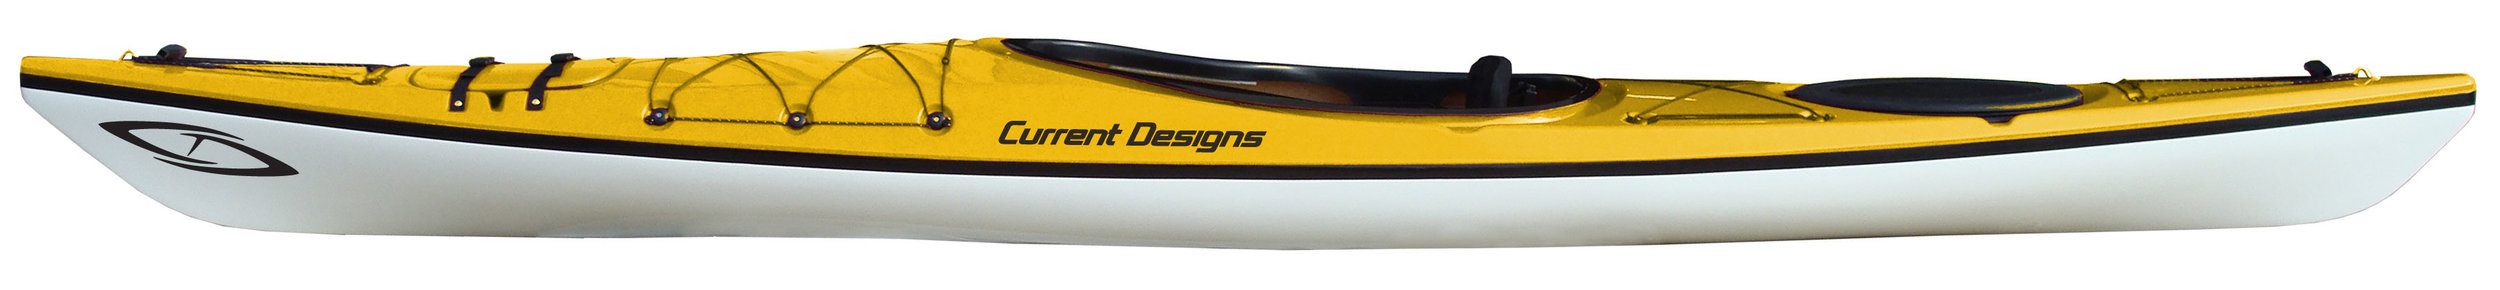 """Vision 130:  If you're looking for a small sized transitional kayak, the composite Vision 130 is the boat for you. A bit more nimble than the 14' and 15' models, it has a unique handling and confidence inspiring feel. Length: 13' 0"""" Width: 24.00"""""""